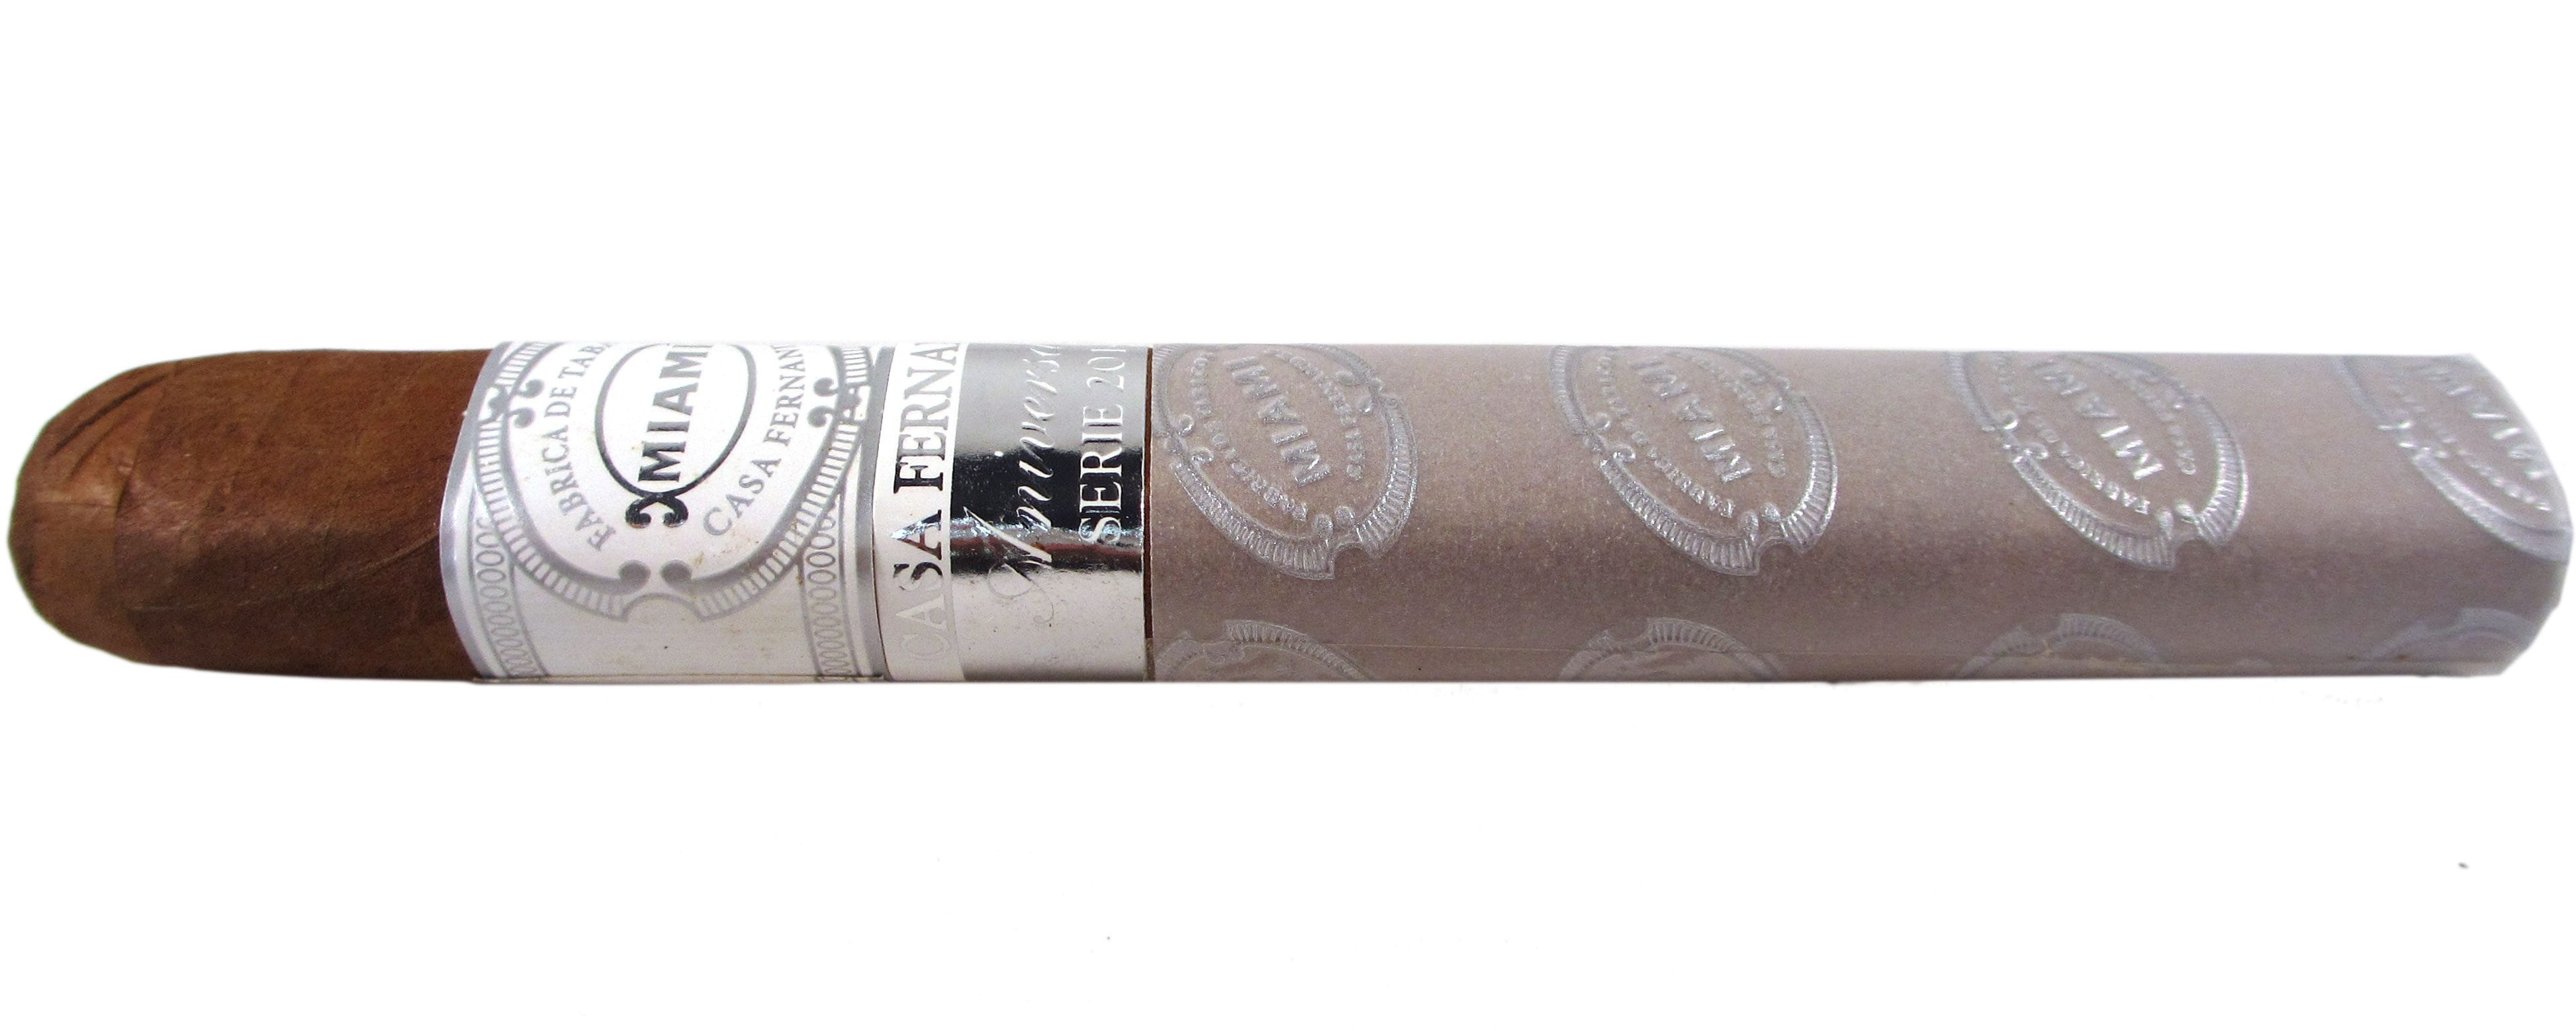 Blind Cigar Review: Casa Fernandez | Aniversario Serie 2014 The Ares